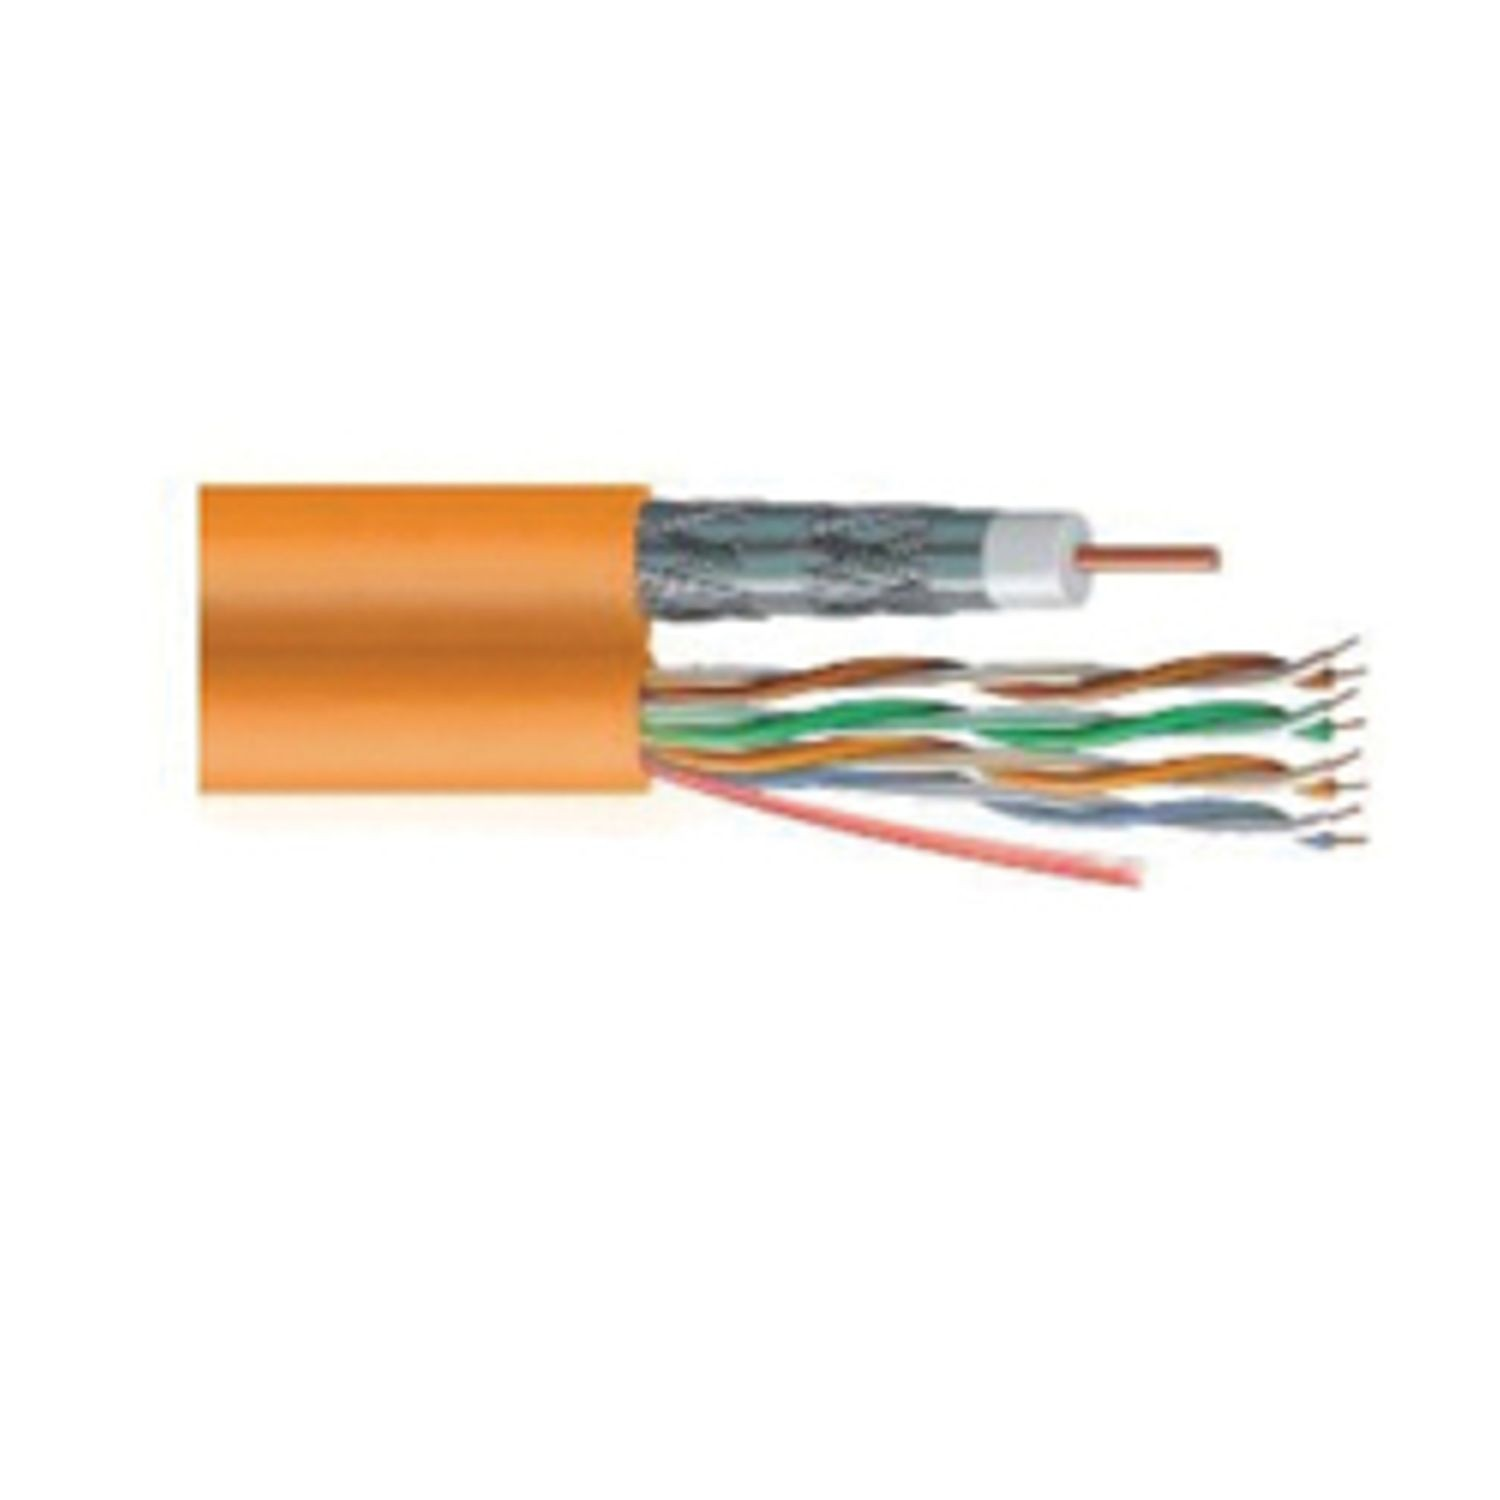 Commscope Ultrahome 6 Cat 5e Cmg Cmr Quad Shielded Coaxial Cable Copper Electrical Wire Bare Solid And 4 Pair 24 To 18 Awg Conductor Orange Jacket